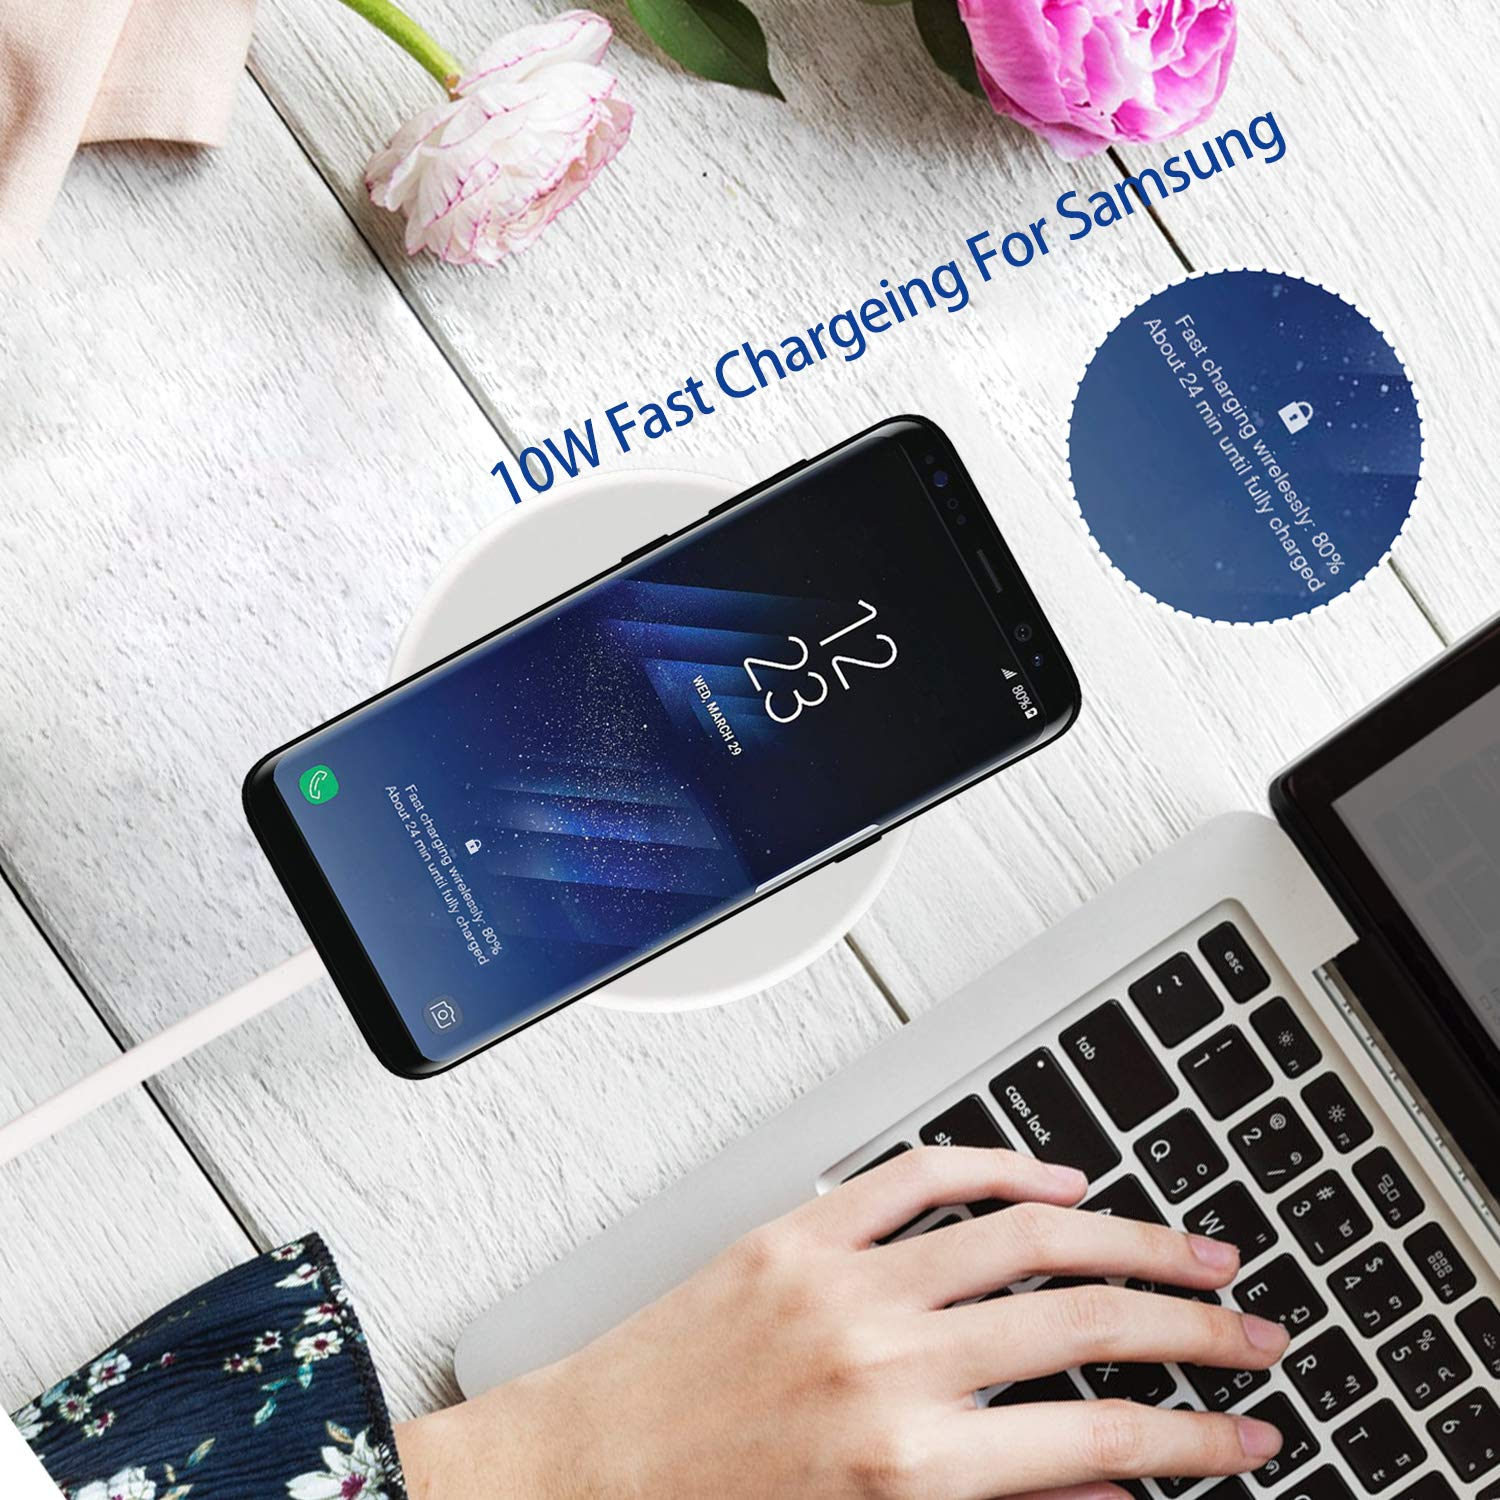 Fast Wireless Charger for Samsung Galaxy S8/S8+/S7/S7 edge/S6 edge+, and Note 5, Qi Wireless Charging Pad for iPhone X/iPhone 8/8 Plus and other Qi-enabled Devices - Upgraded Version